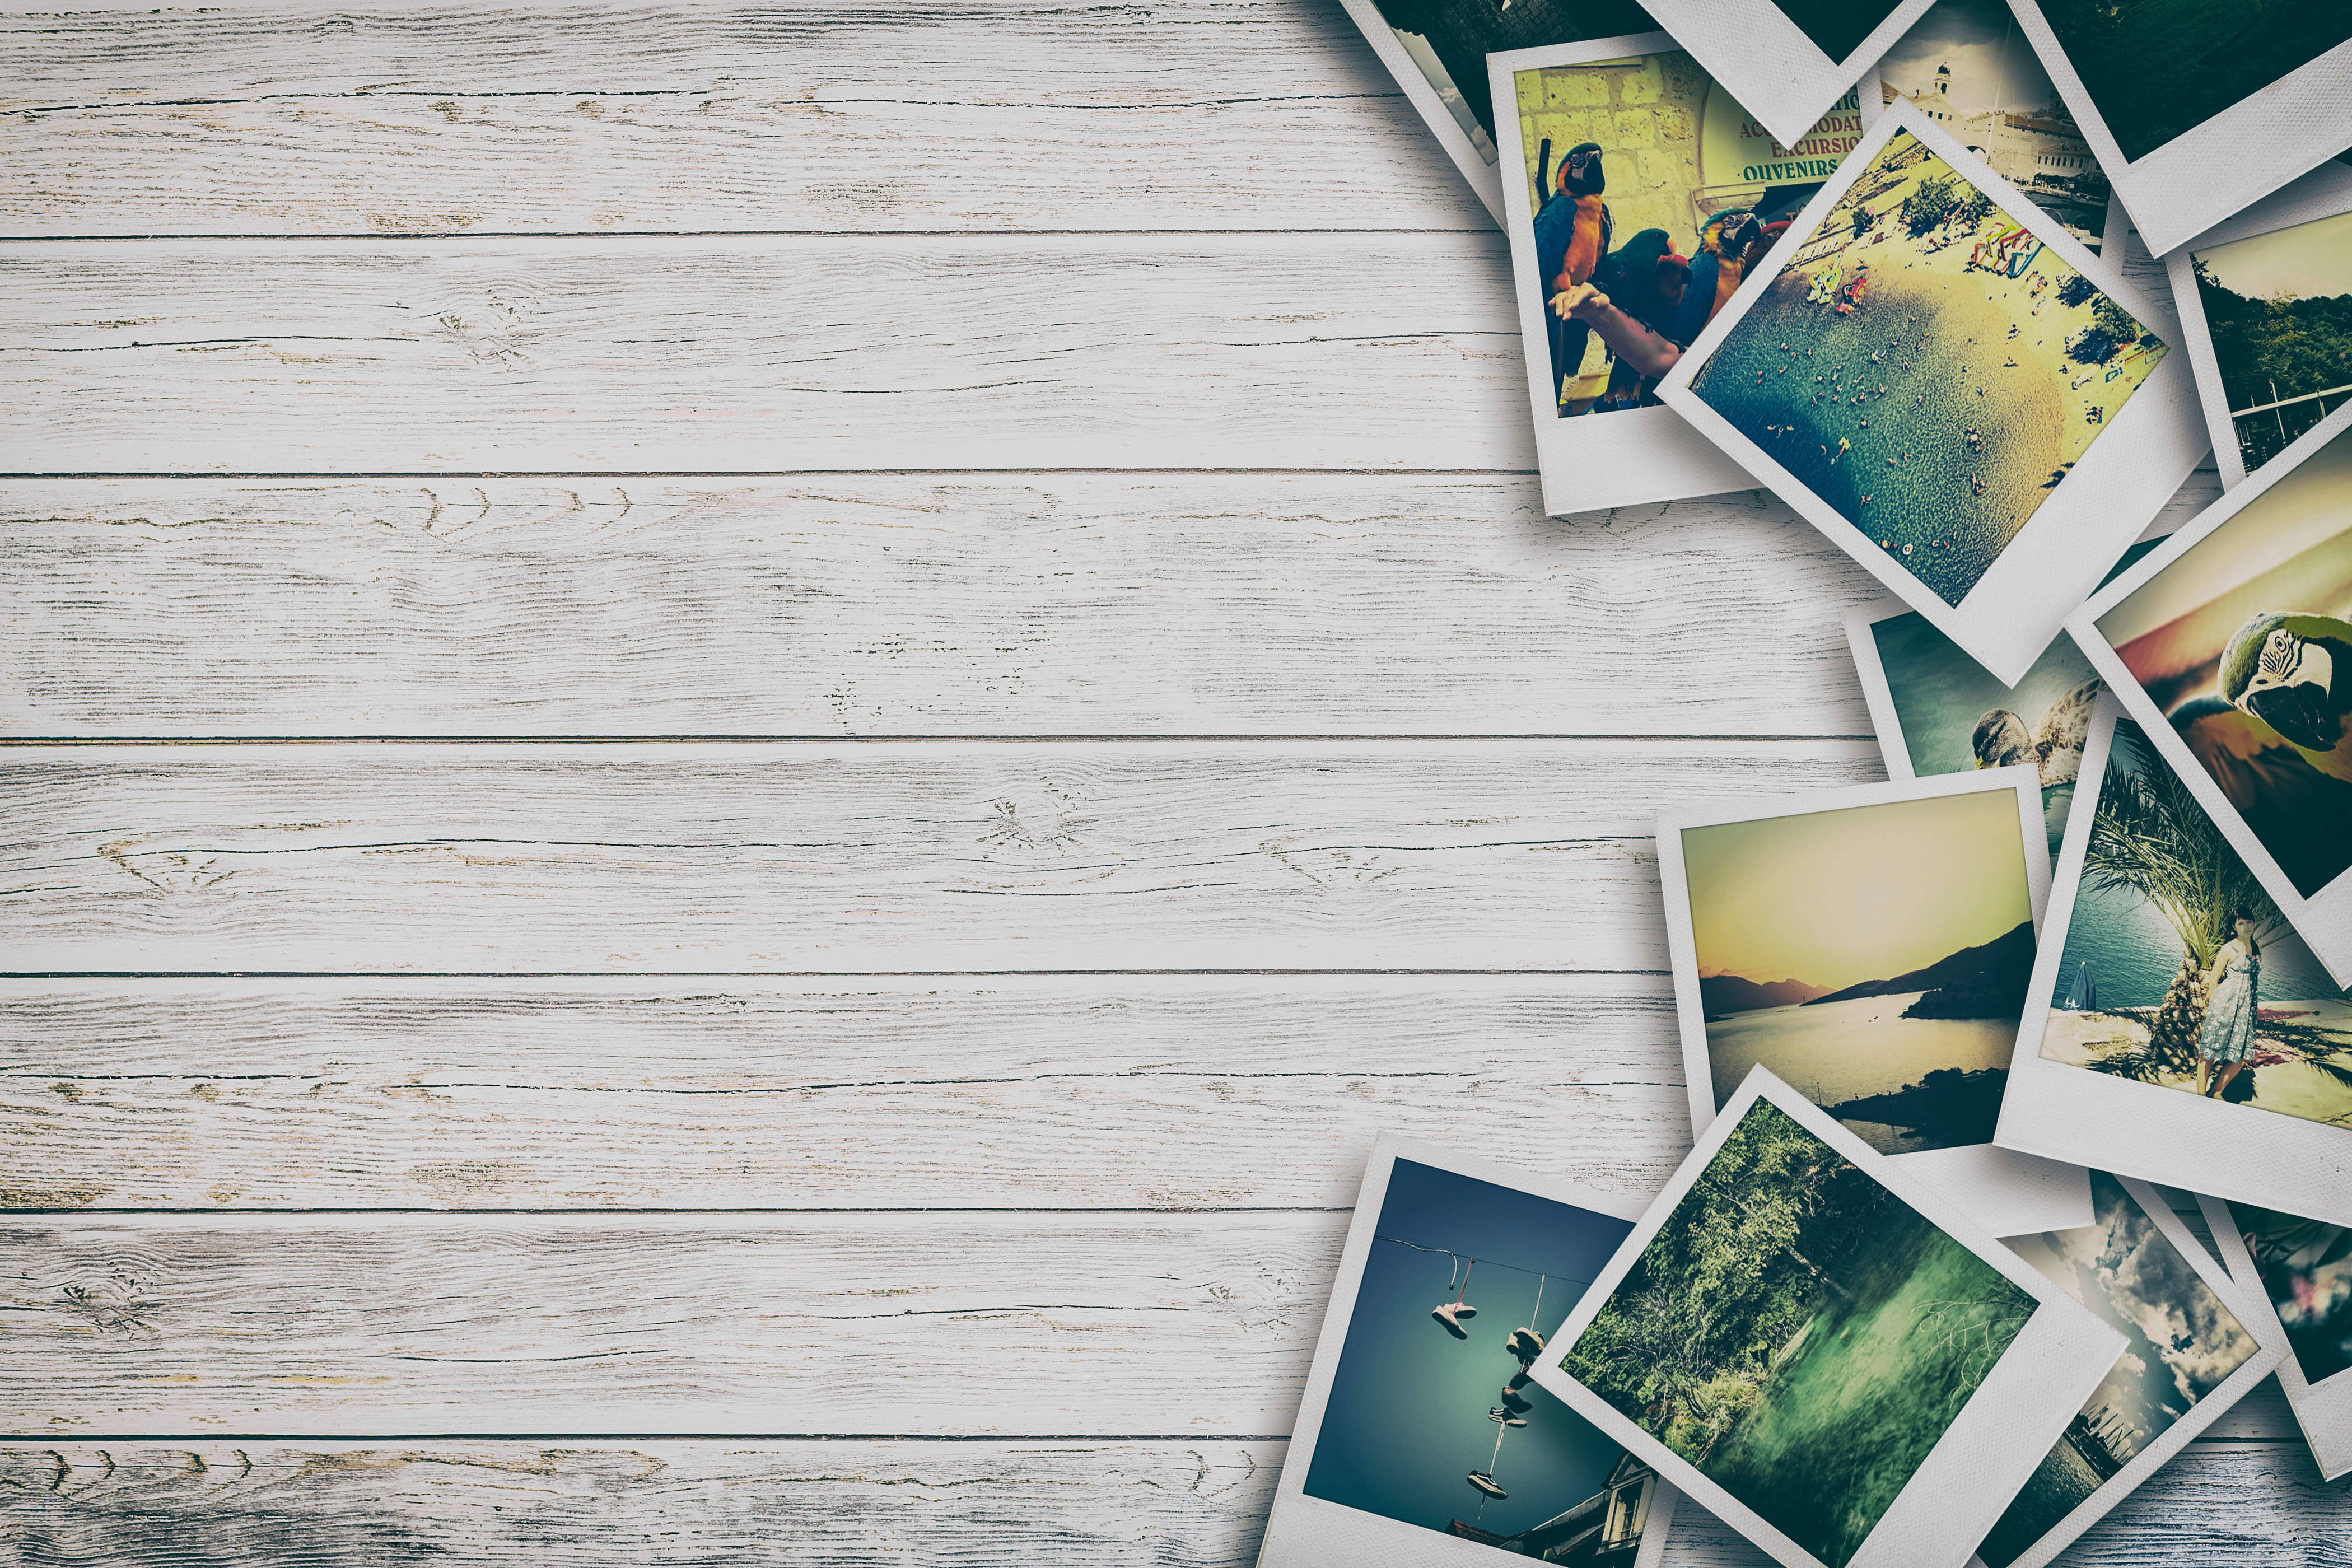 Why Pinterest is the Right Platform for Brands in 2018